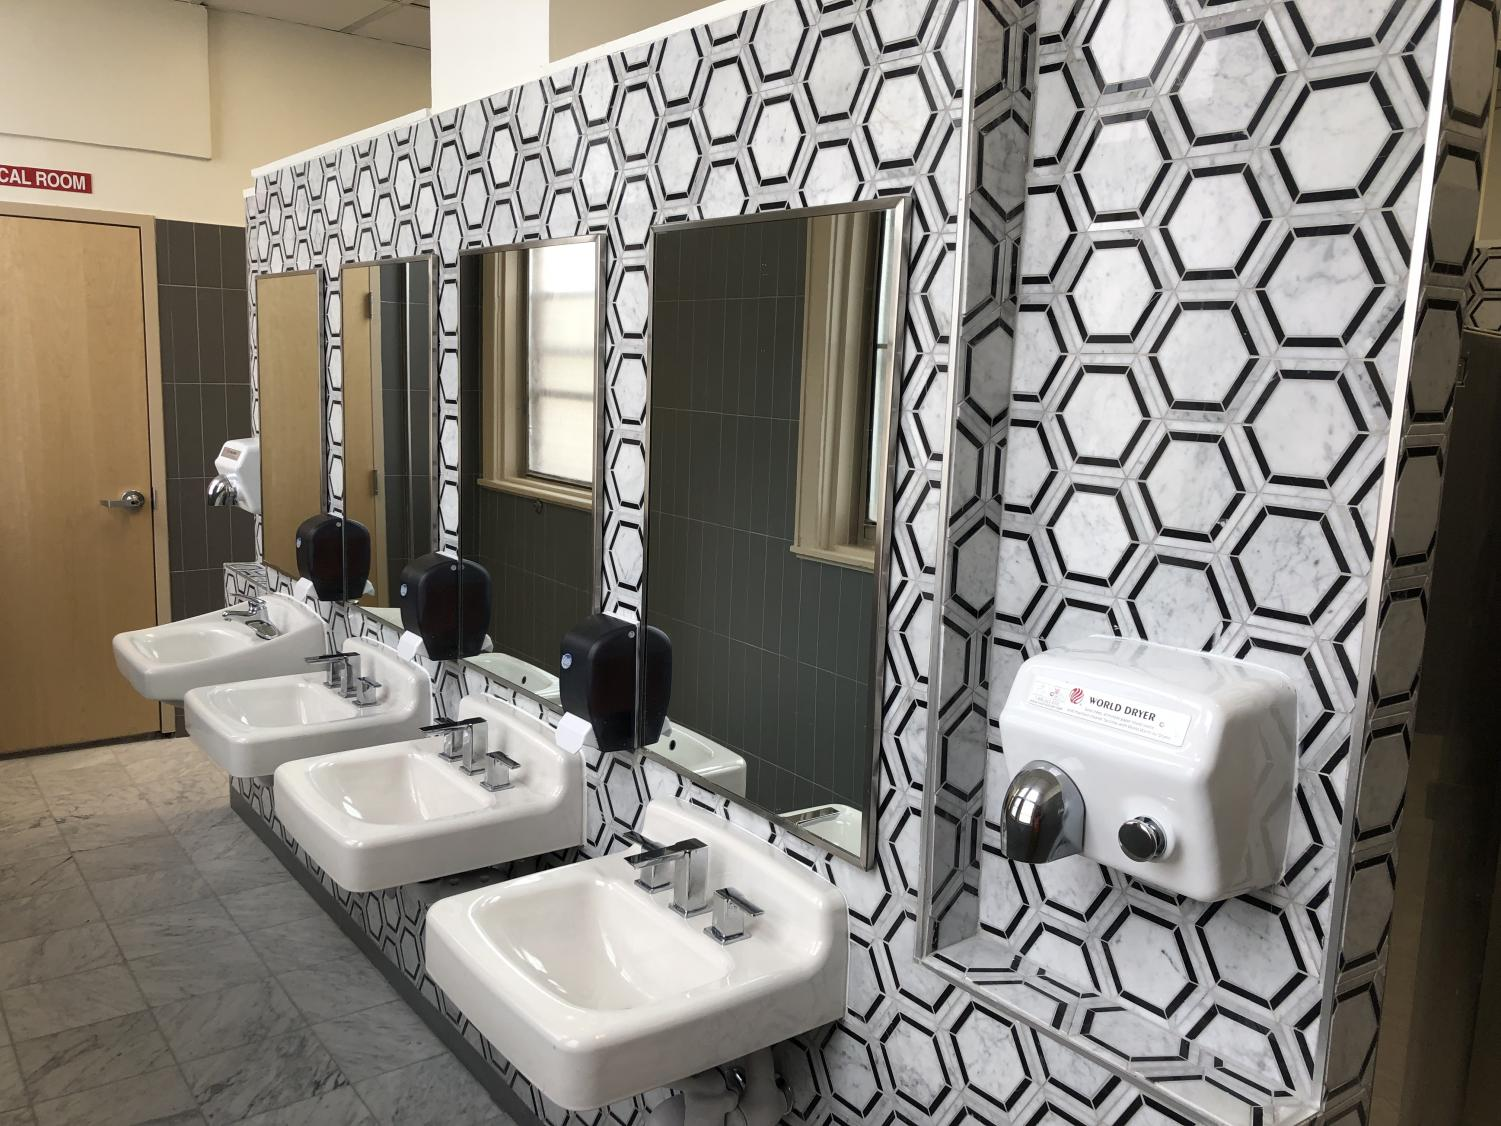 The restroom renovations were part of the EPISD bond project. The new design has generated mixed emotions from students.